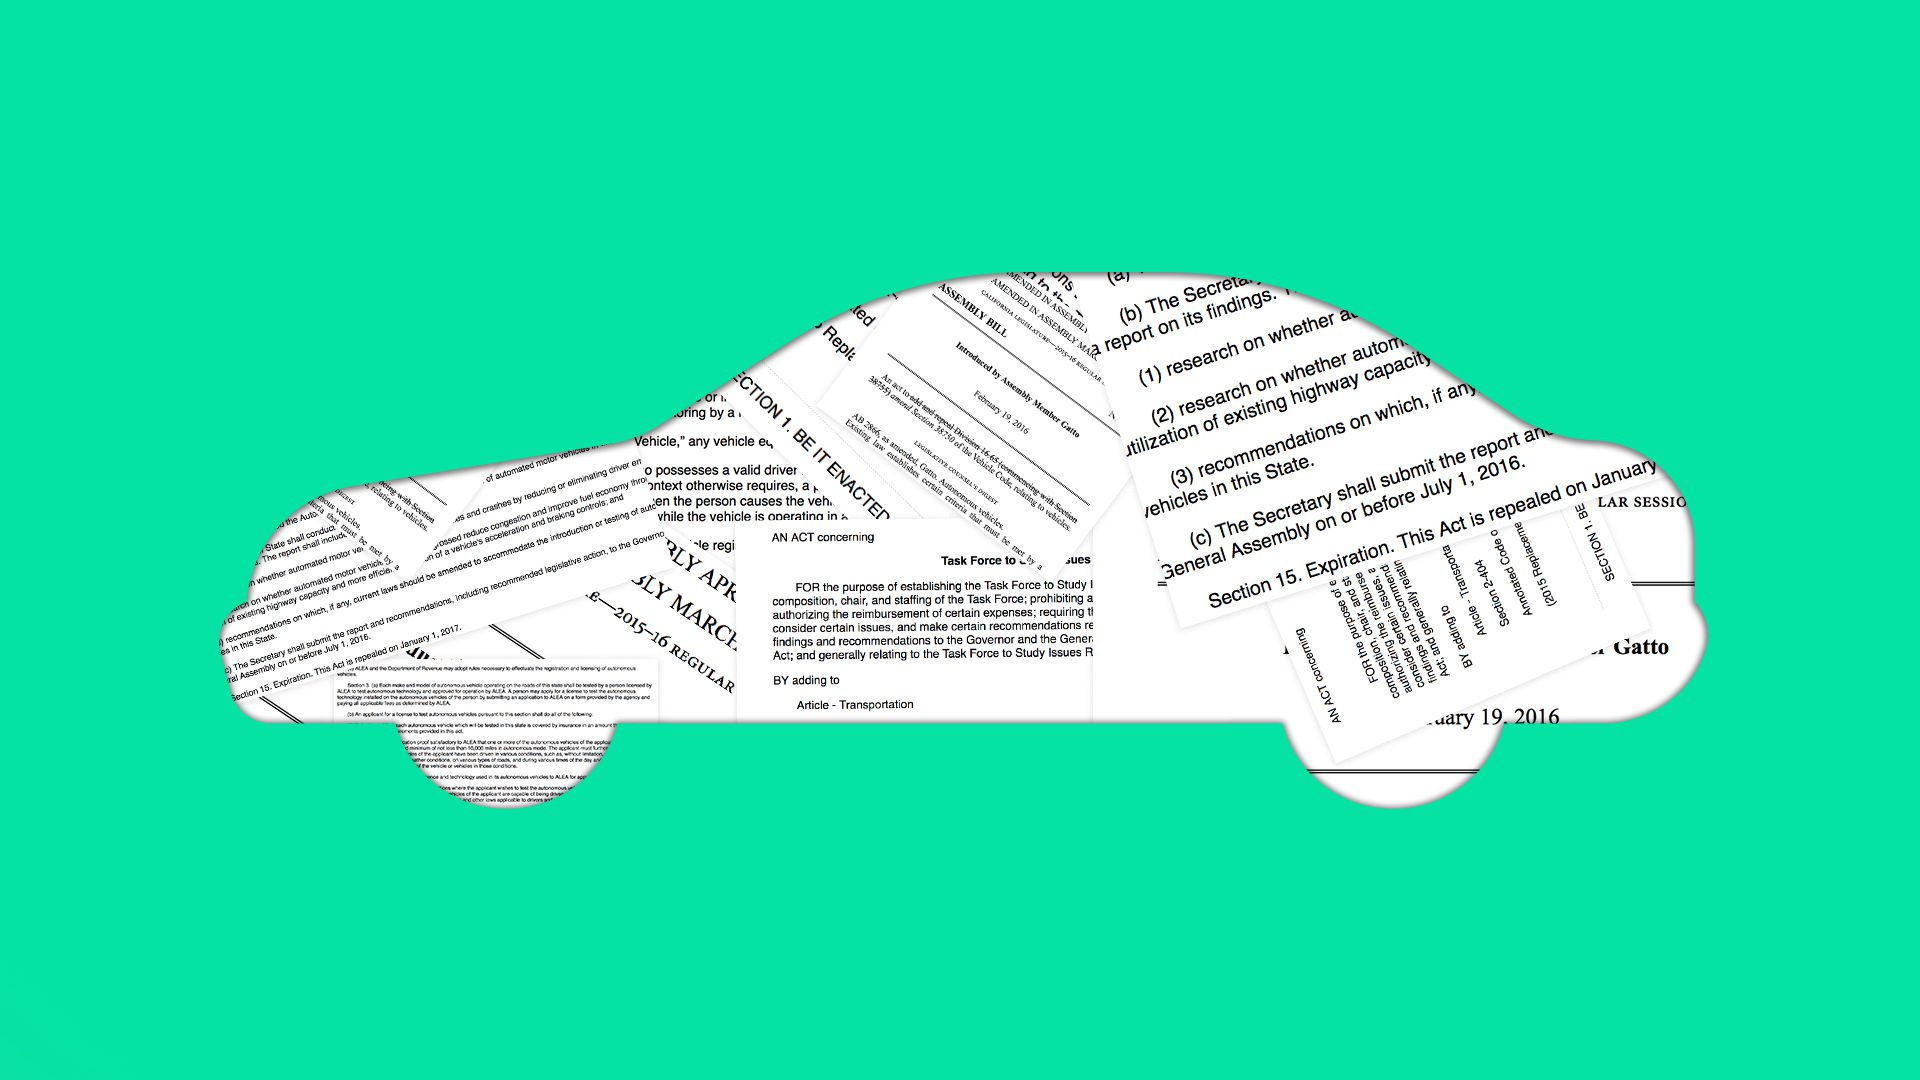 silhouette of a car filled with mocked-up legislation drafts